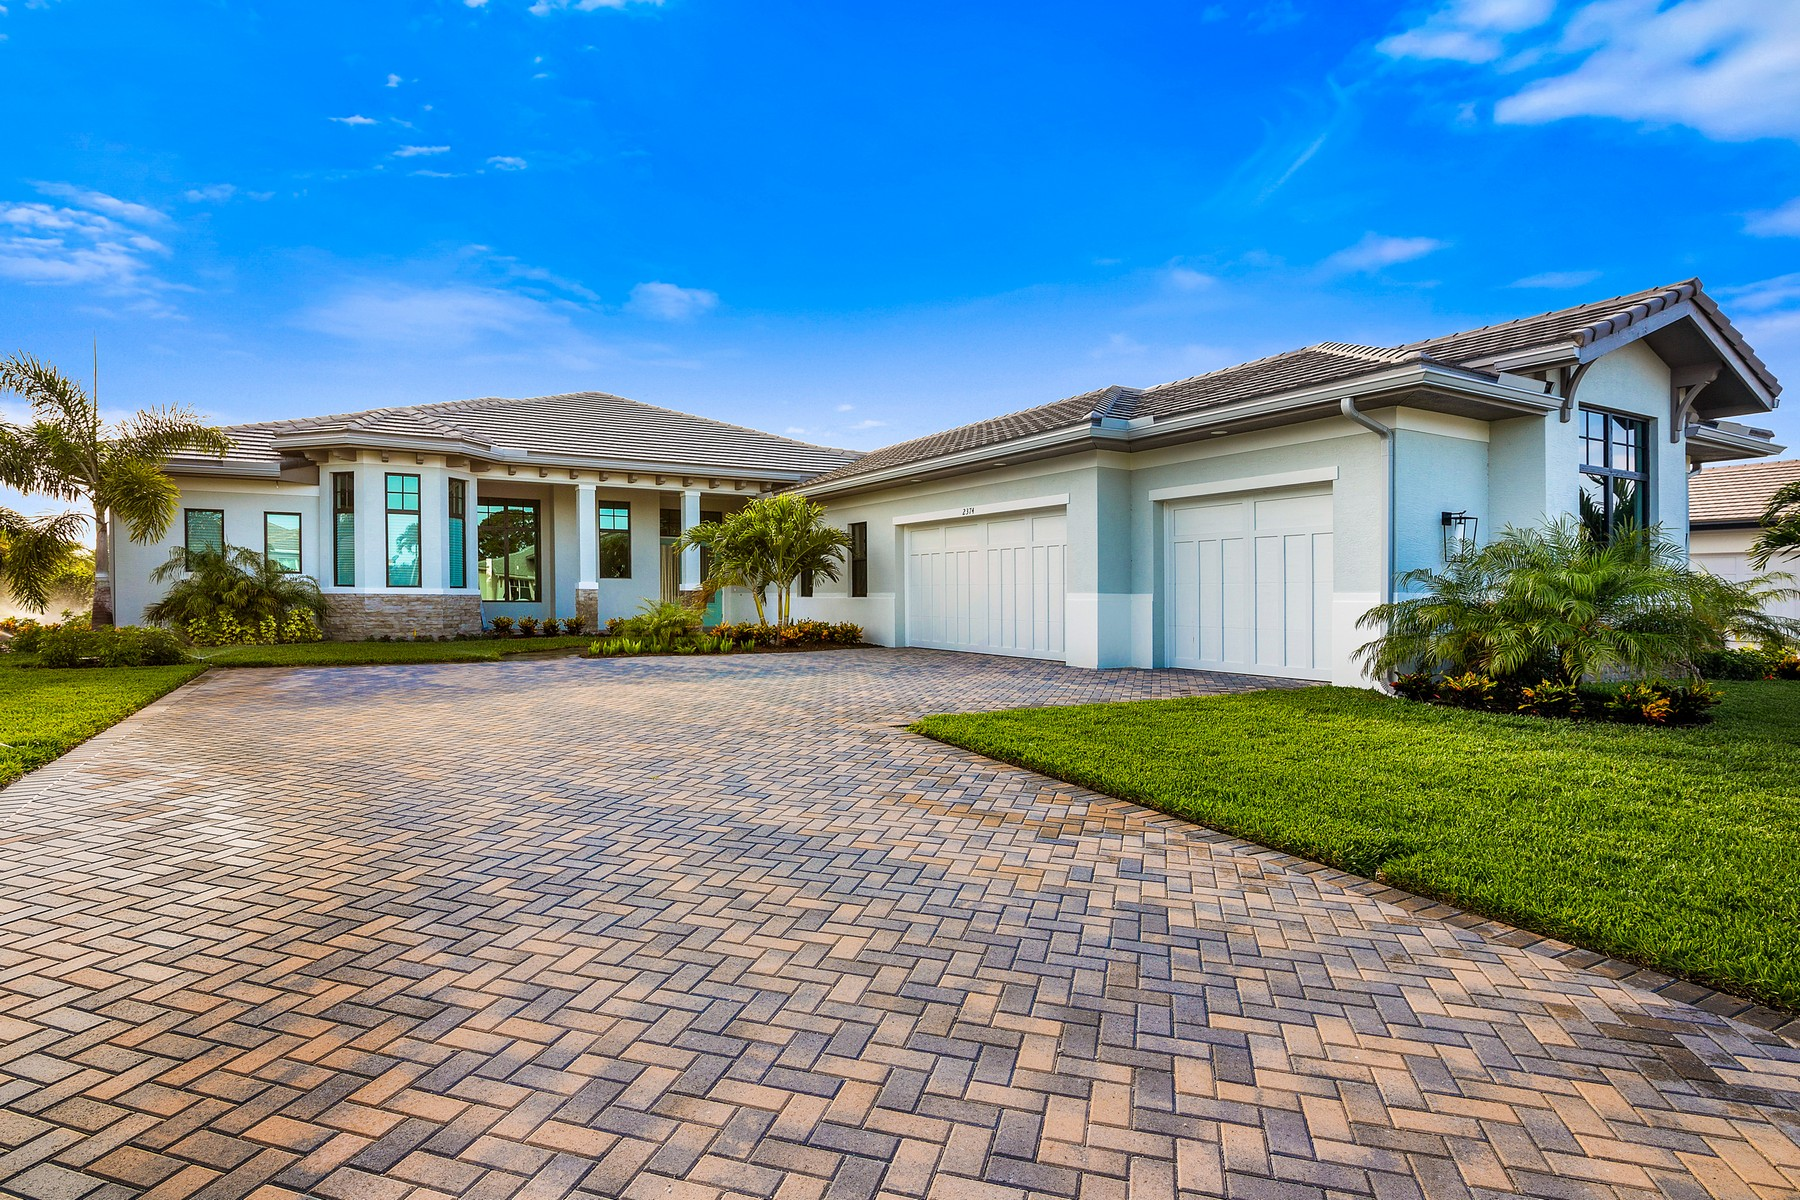 Single Family Homes für Verkauf beim Luxury New Construction in Grand Harbor 2344 Grand Harbor Reserve Square Vero Beach, Florida 32967 Vereinigte Staaten